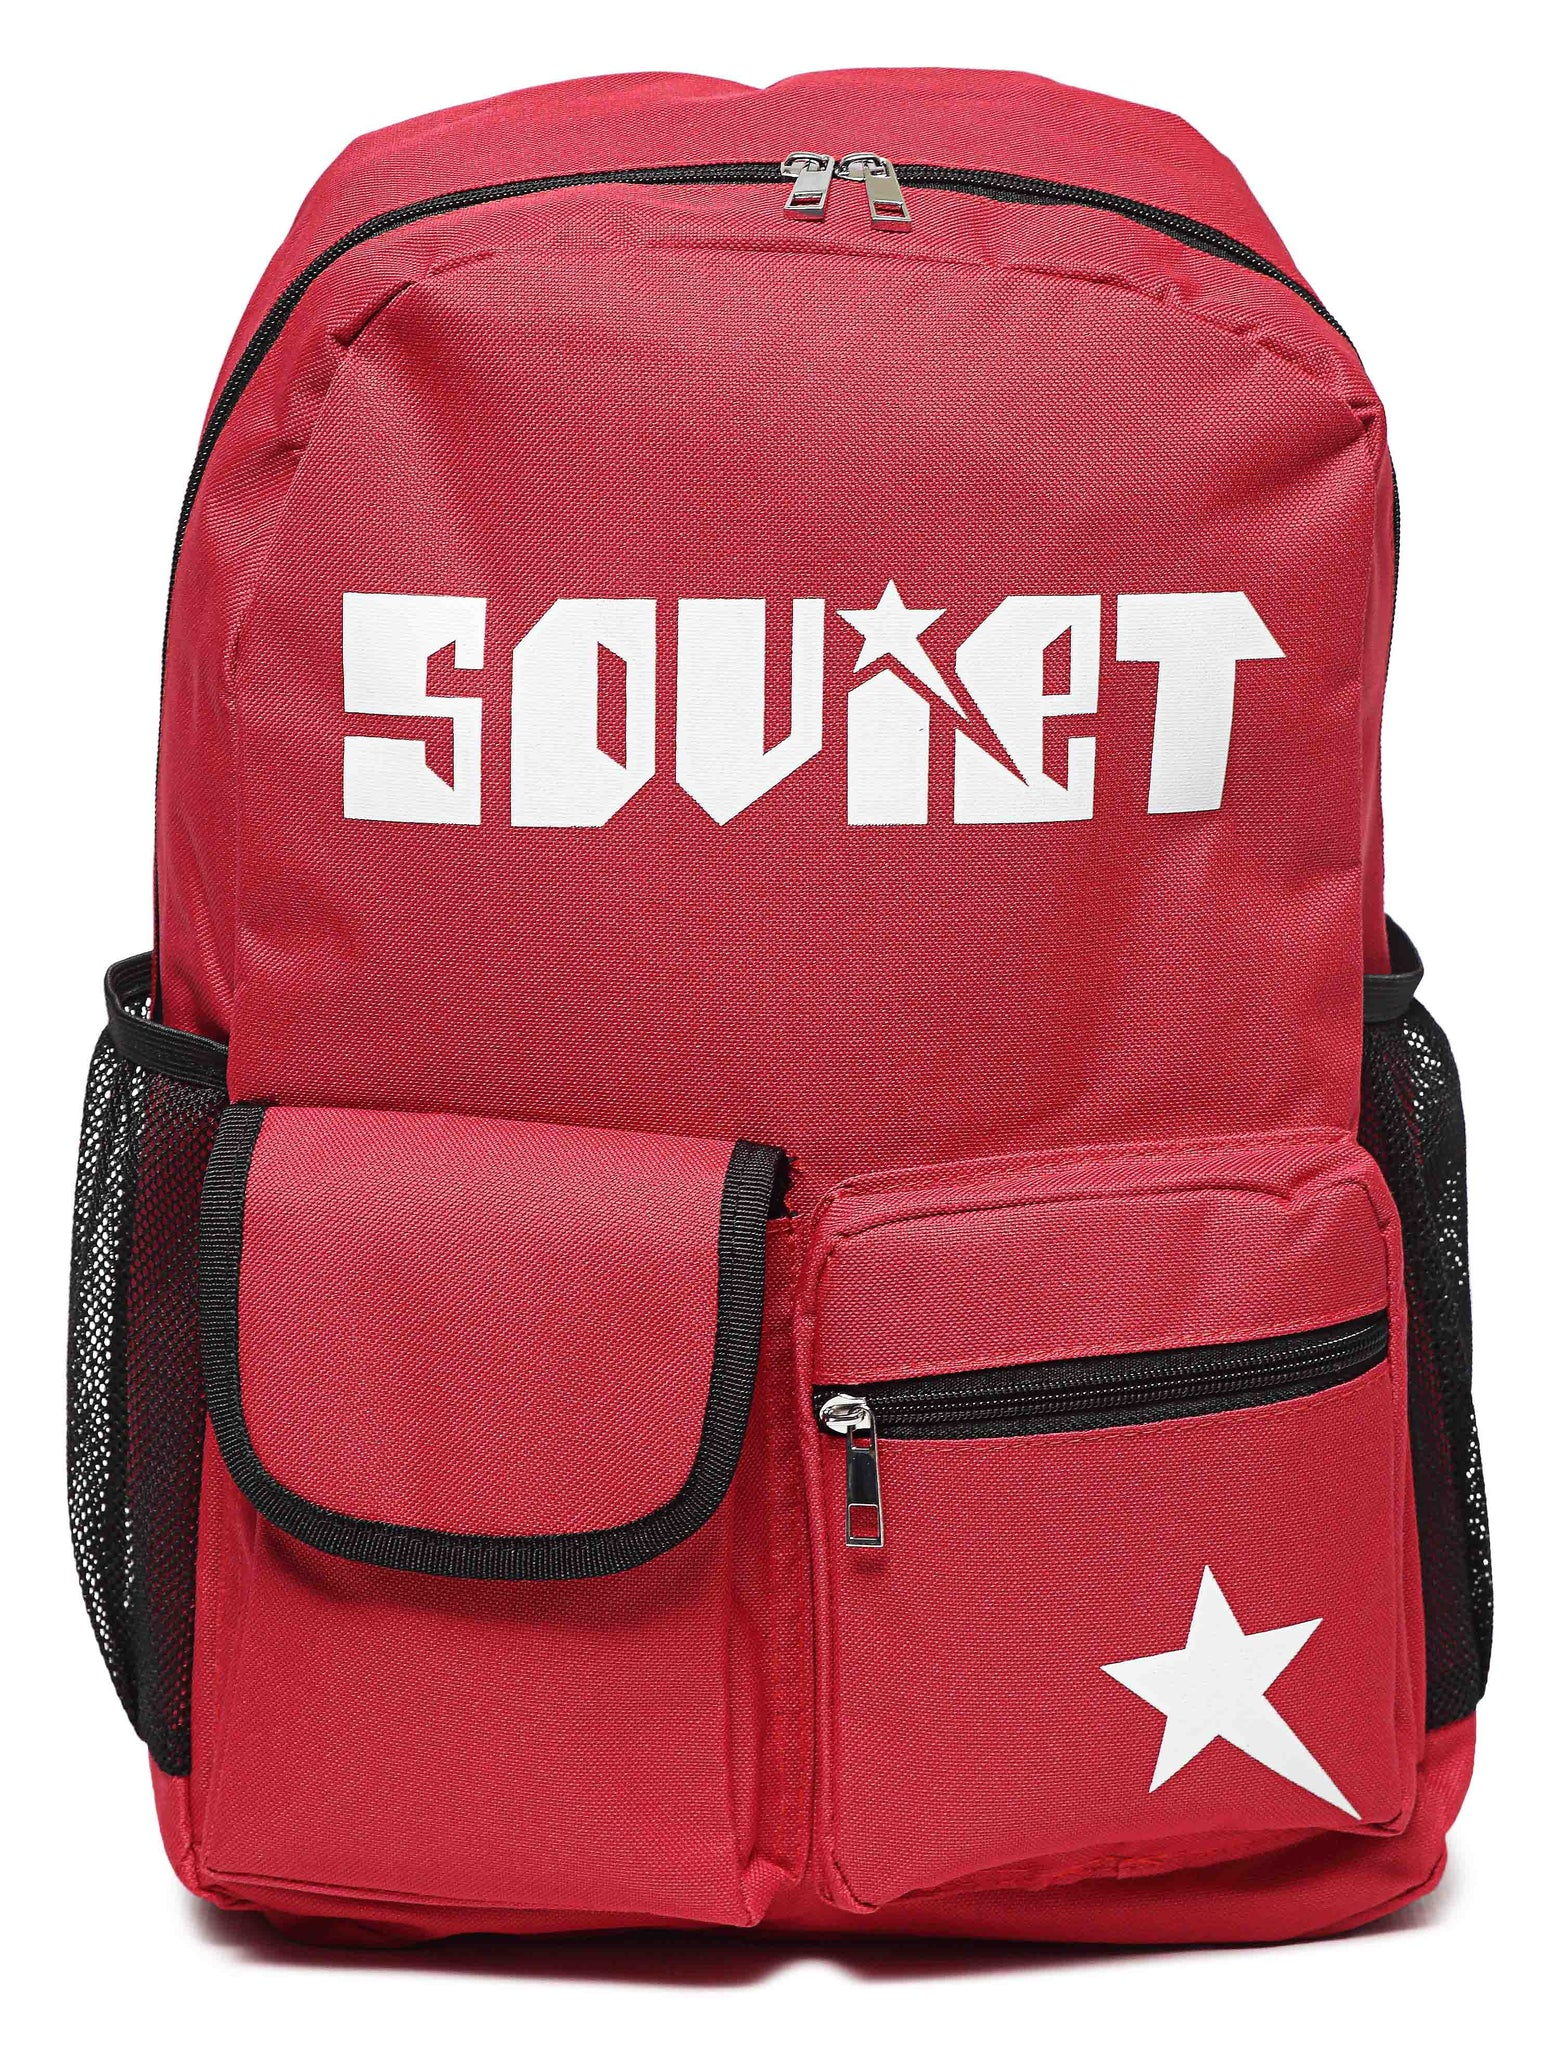 Hotspurs Backpack - Red